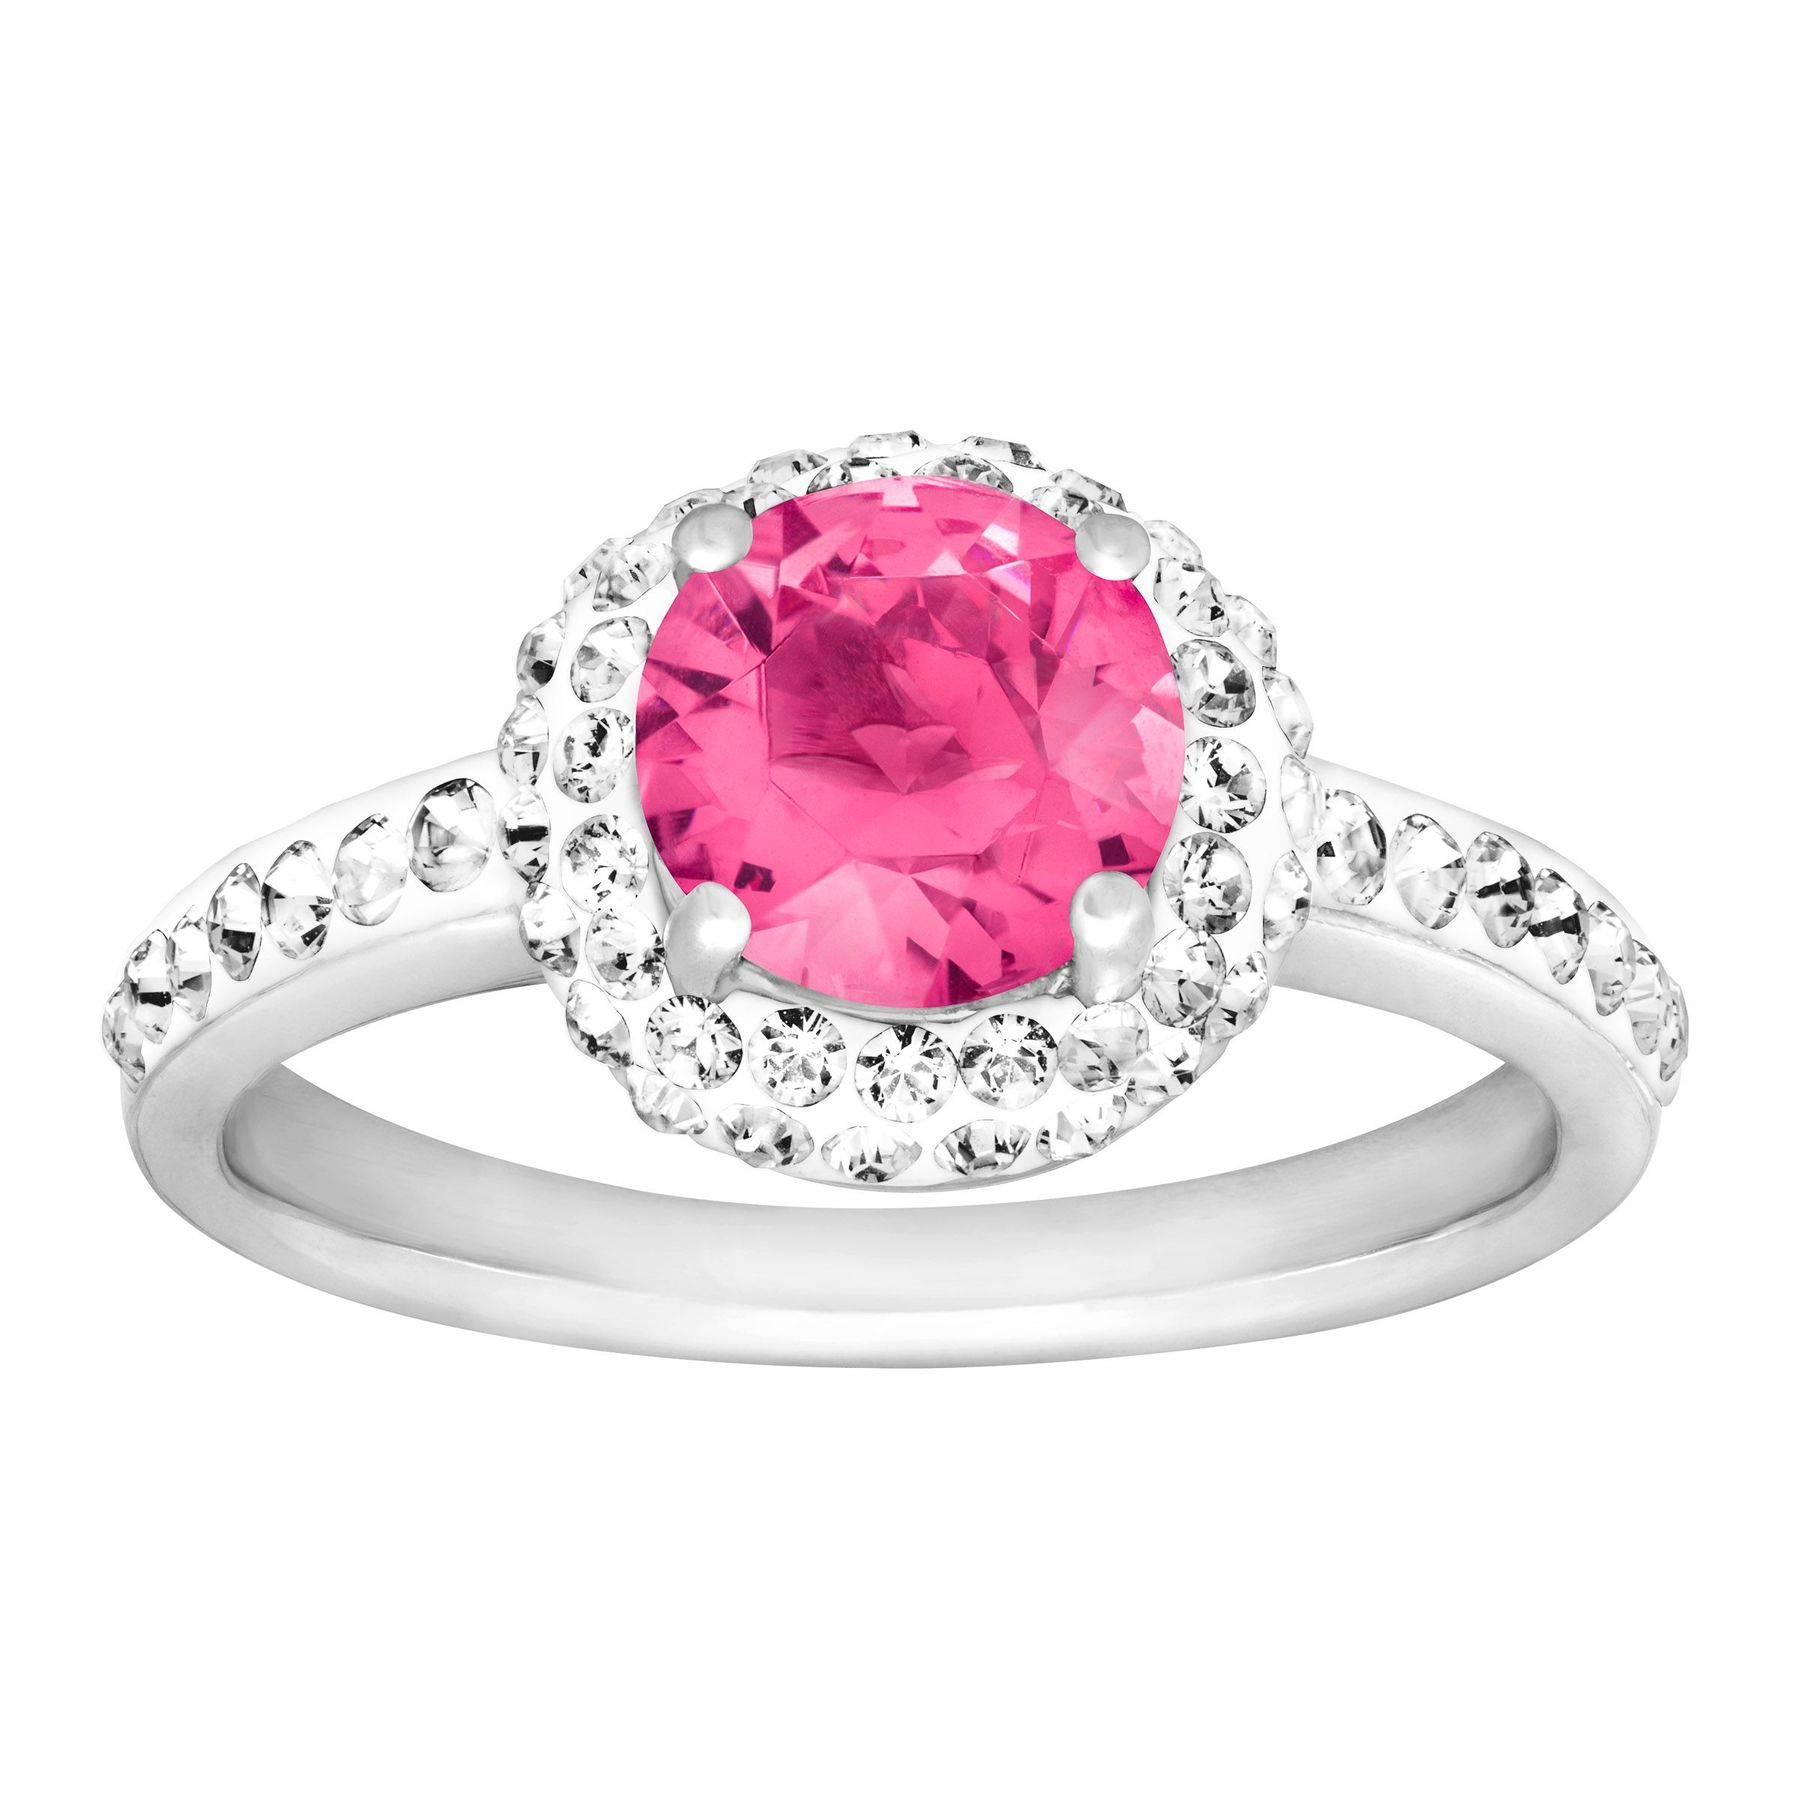 be85c9616 Crystaluxe October Ring with Pink Swarovski Crystals in Sterling ...